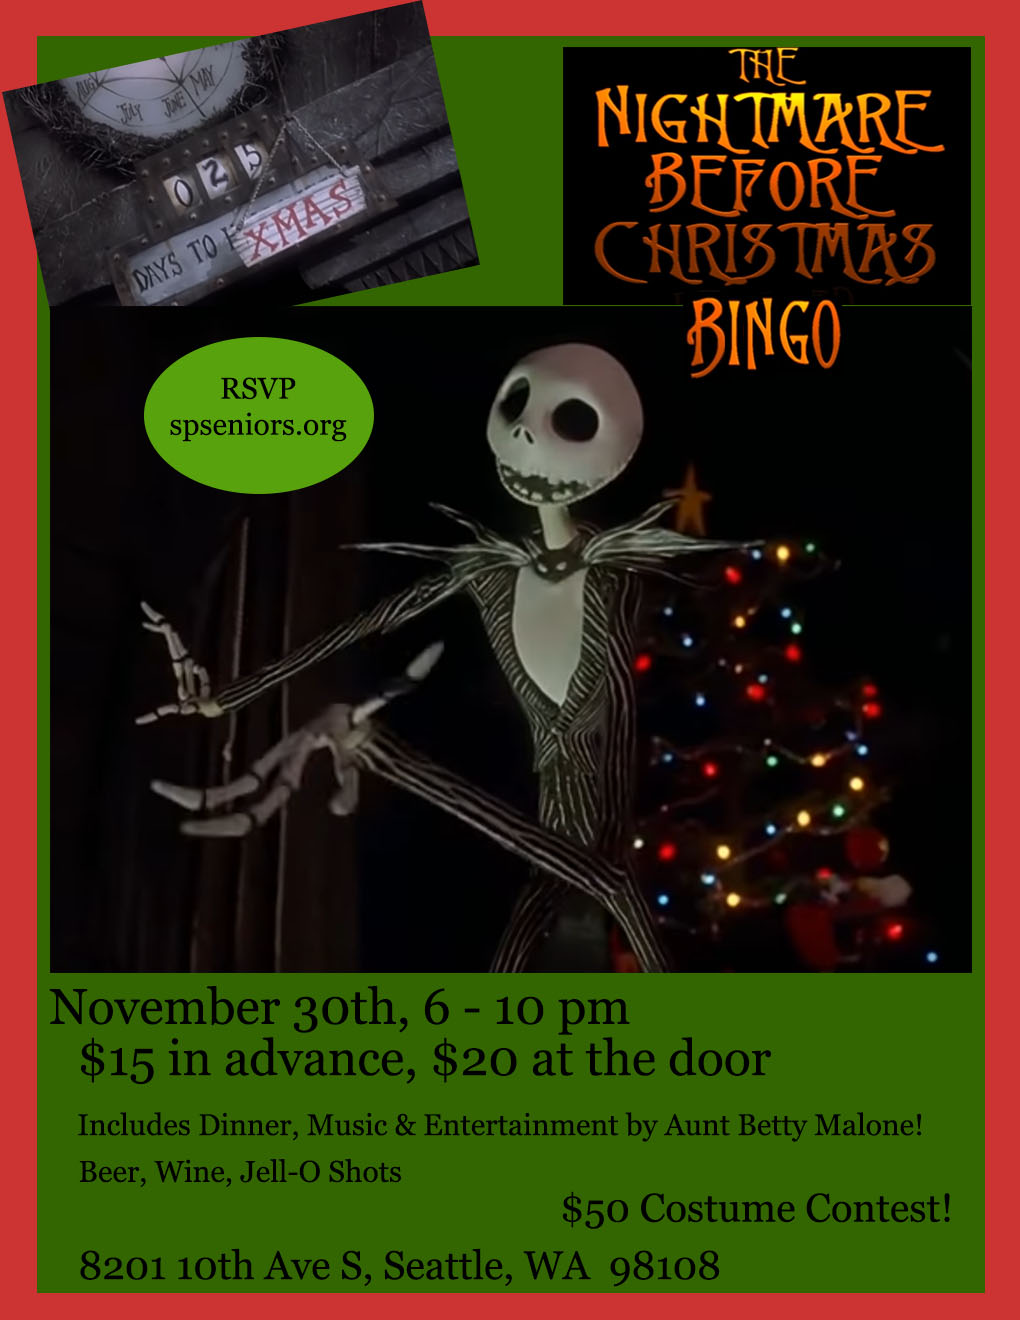 Nightmare Before Christmas BINGO, Friday, November 30th, 6-10 pm